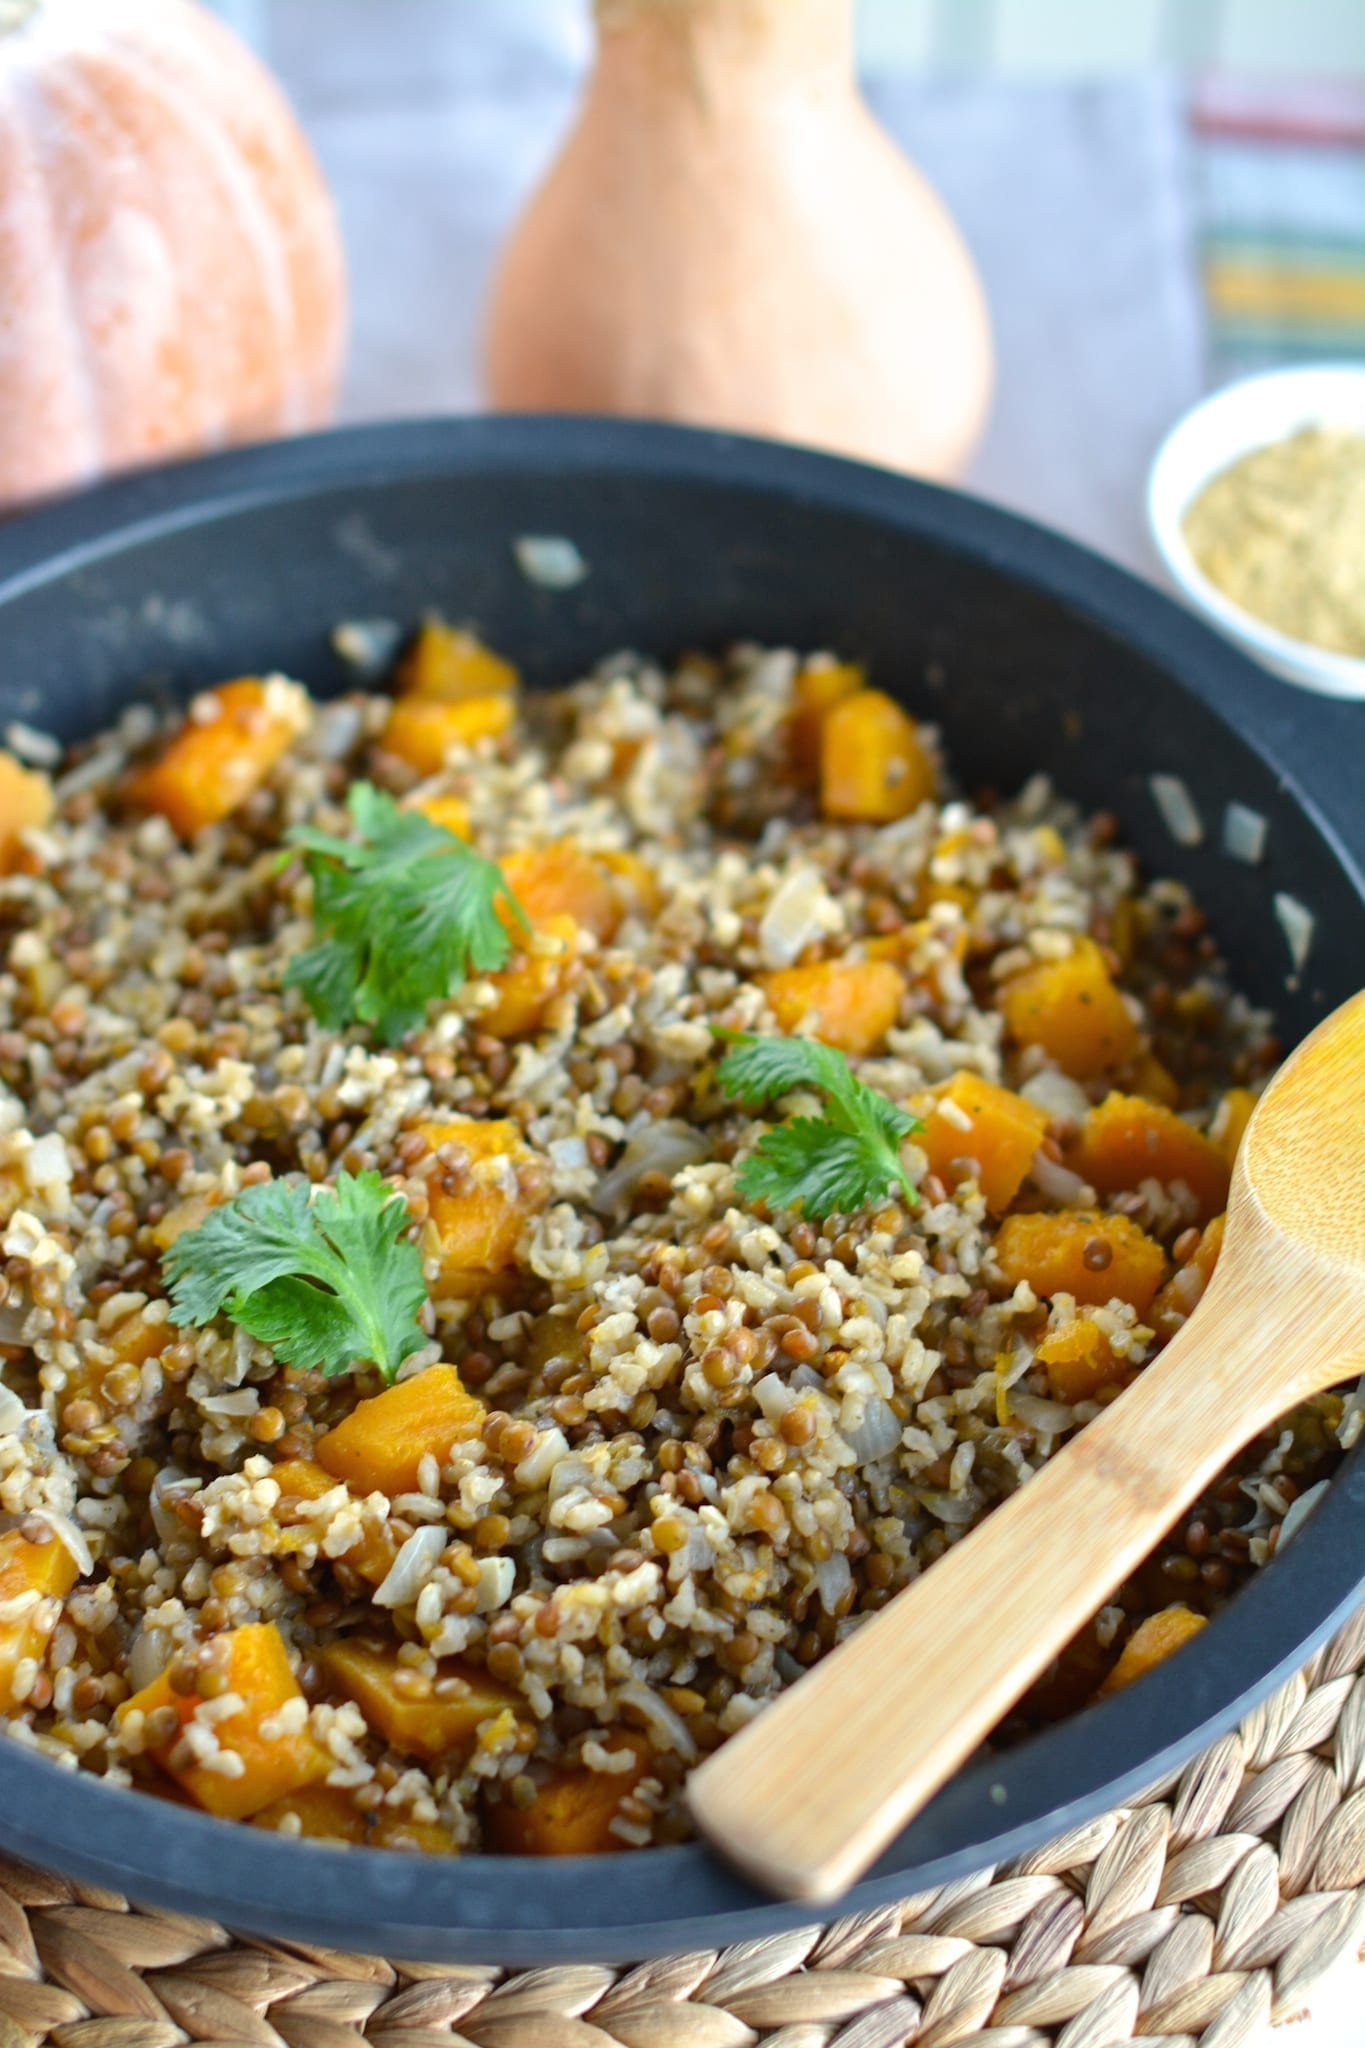 recipe, lunch, dinner, gluten-free, casein-free, oil-free, low fat, vegan, plant-based, risotto